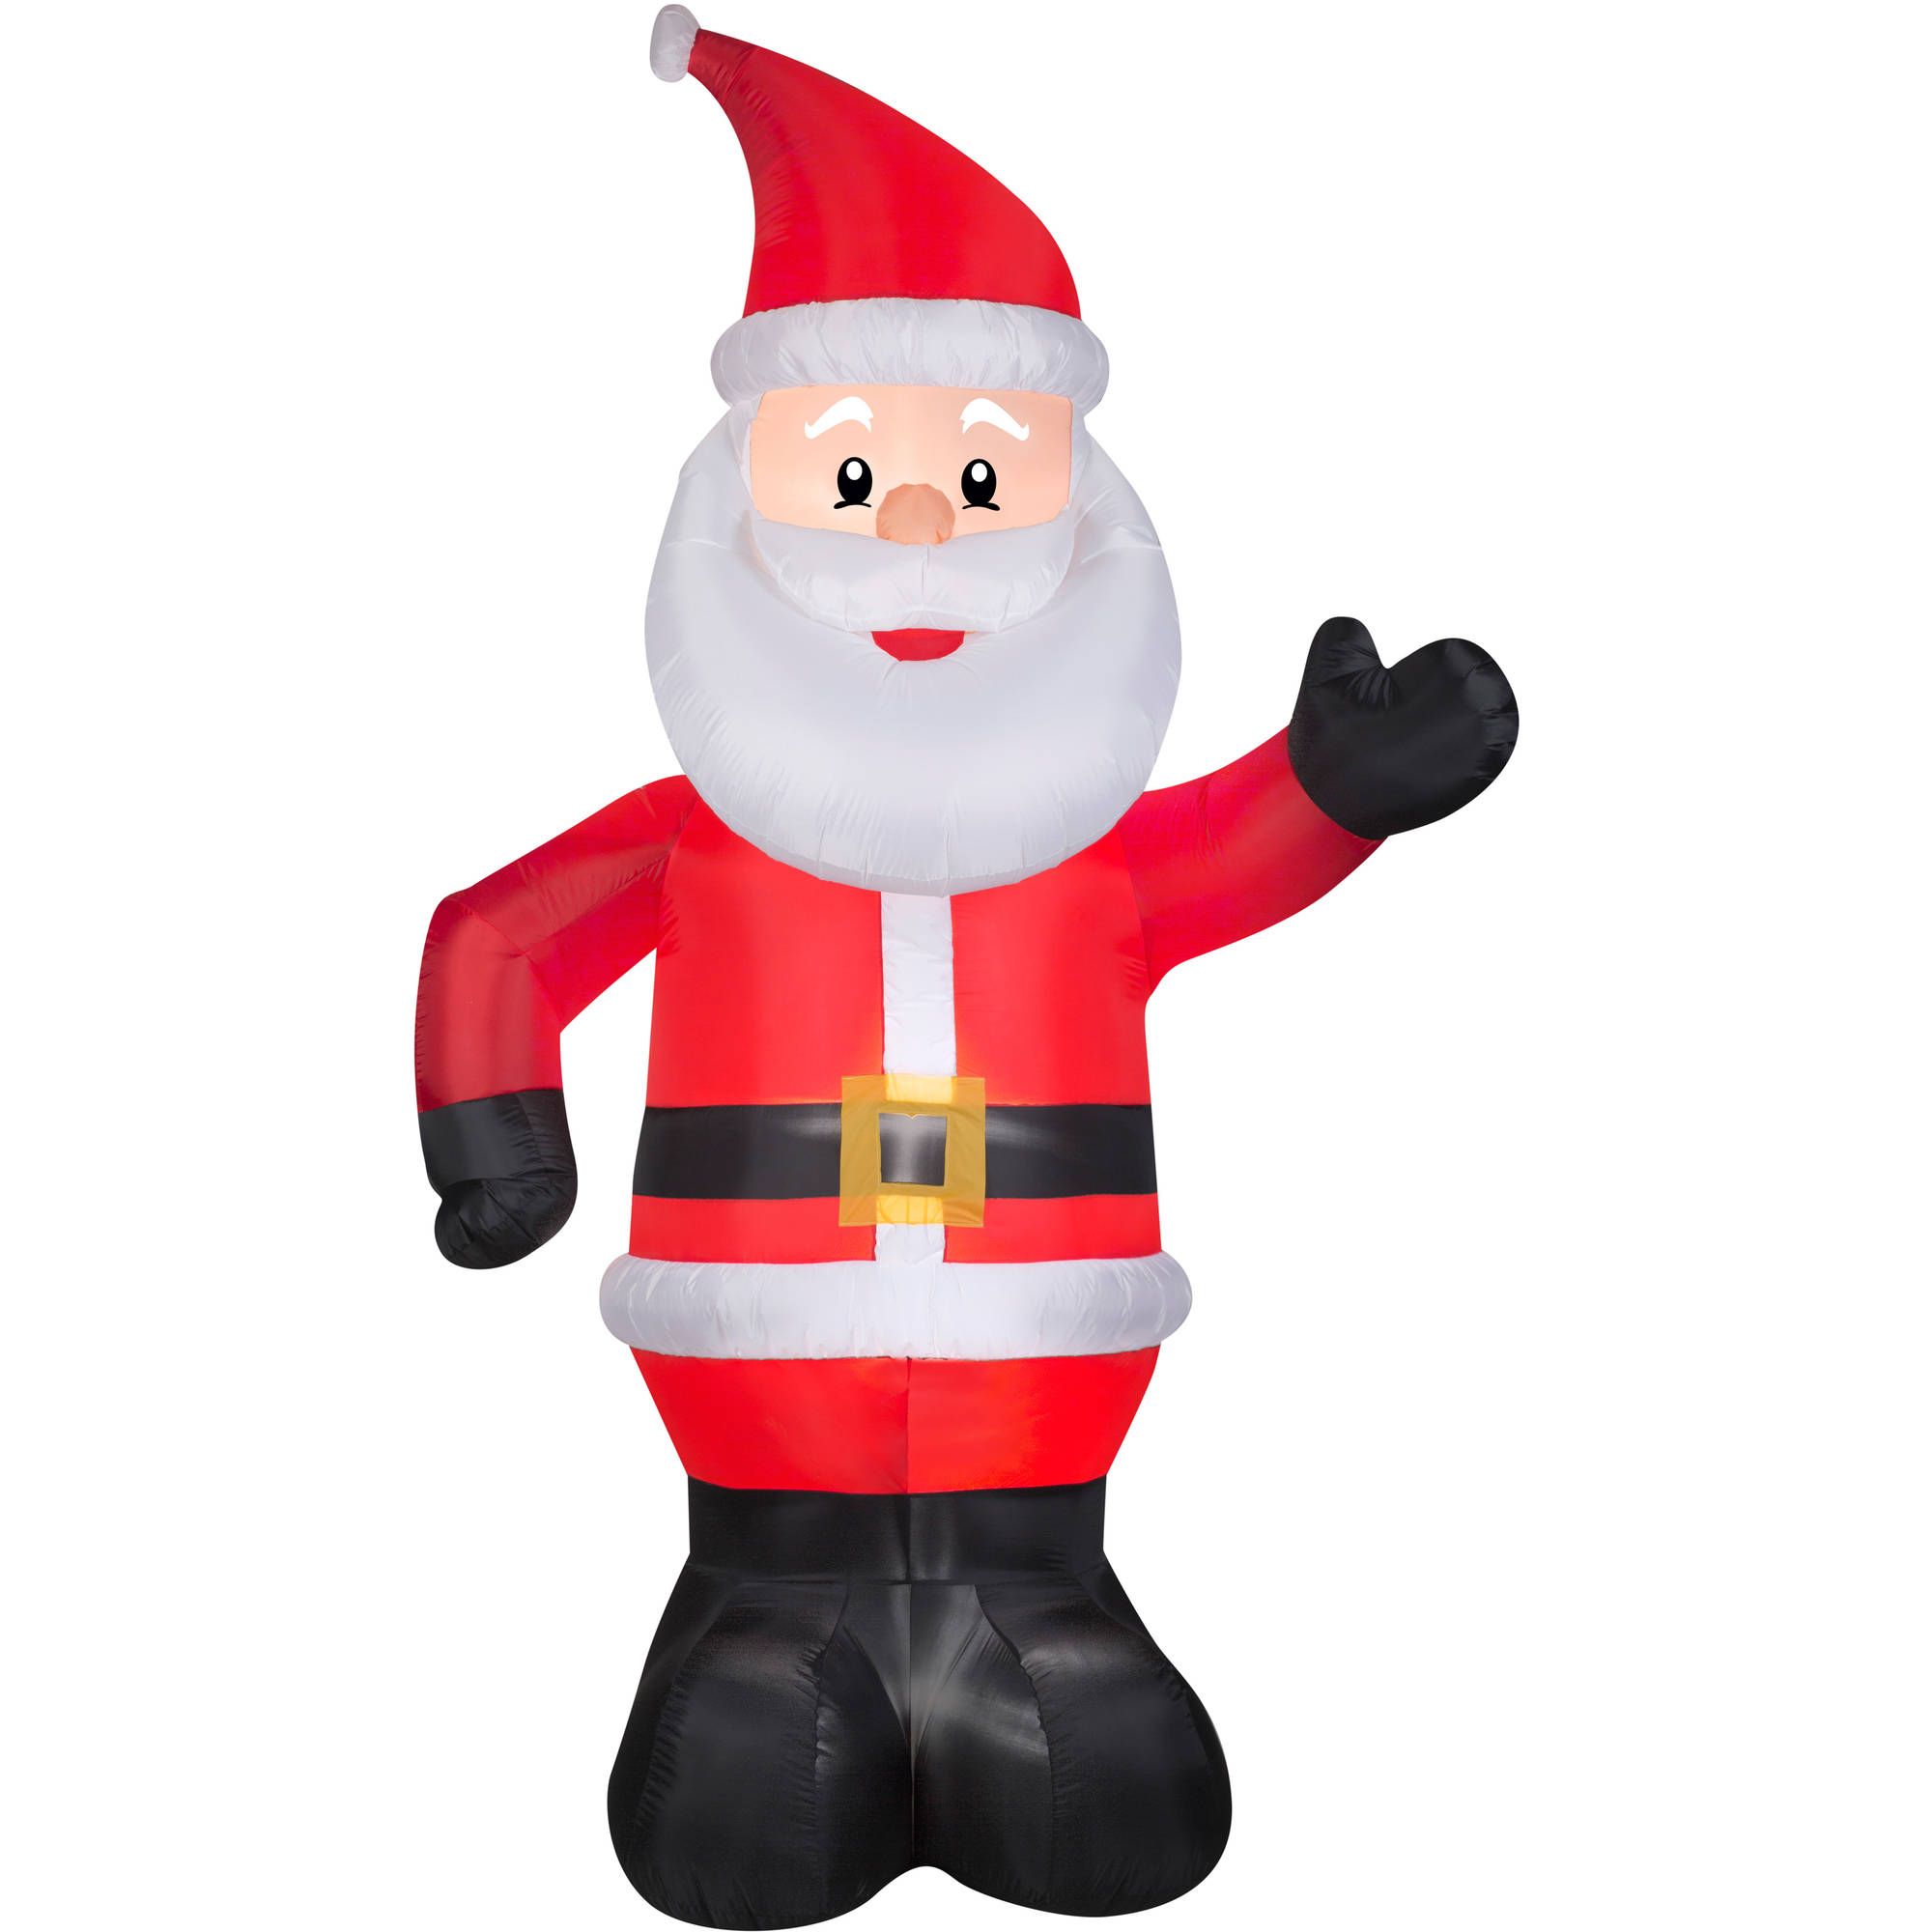 Christmas Ornaments Inflatable Santa With Train For Decorating - Buy ...